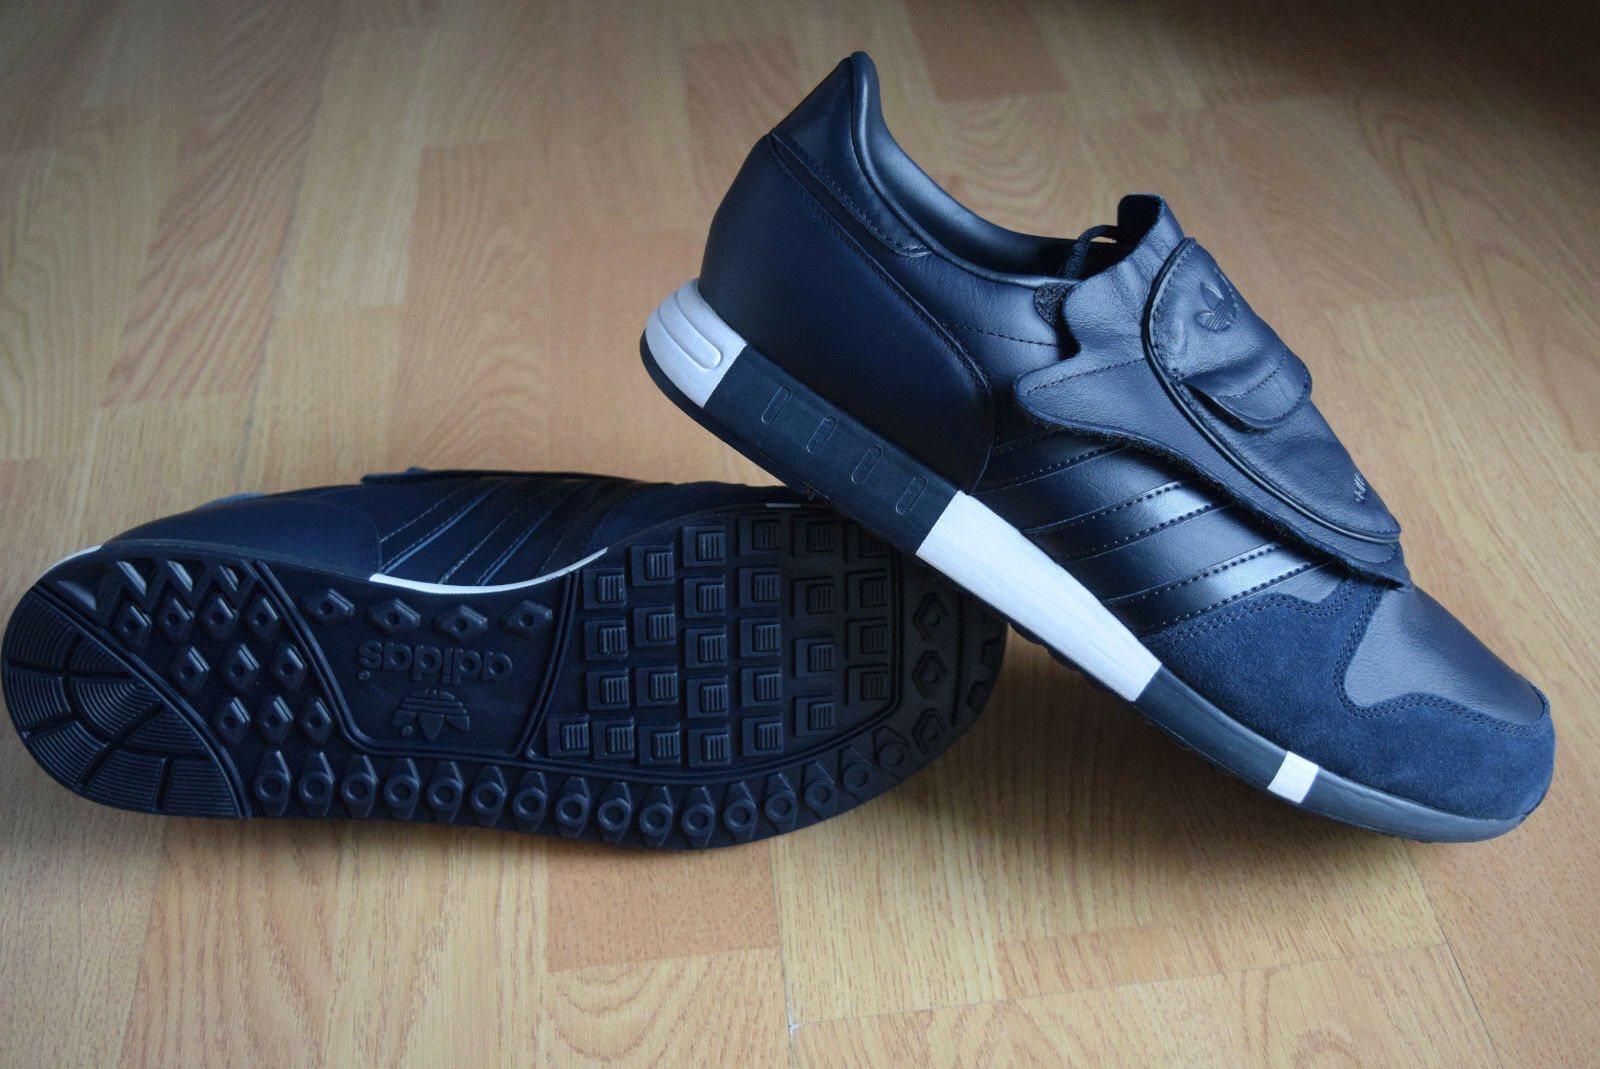 Adidas Adidas Adidas Micropacer AOH-006 44,5 46 47 by Hyke nmd yeezy boston consortium S79348 7a73a3